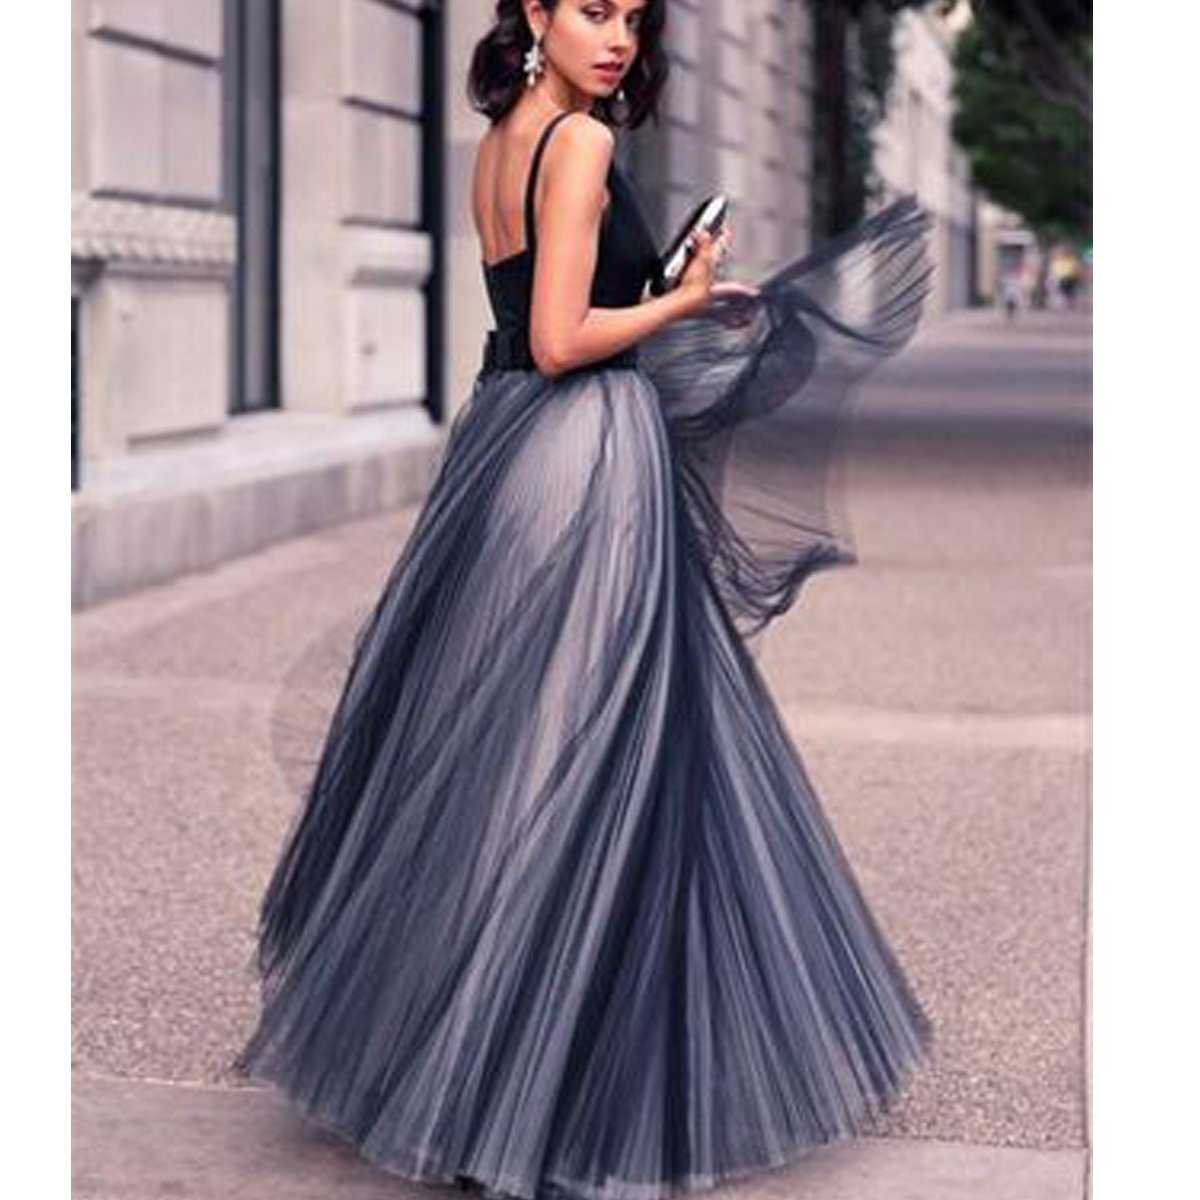 TTYbridal Satin V Neck Prom Dresses Long Tulle Formal Eveing Party Gowns - Black - 22 Plus: Amazon.co.uk: Clothing